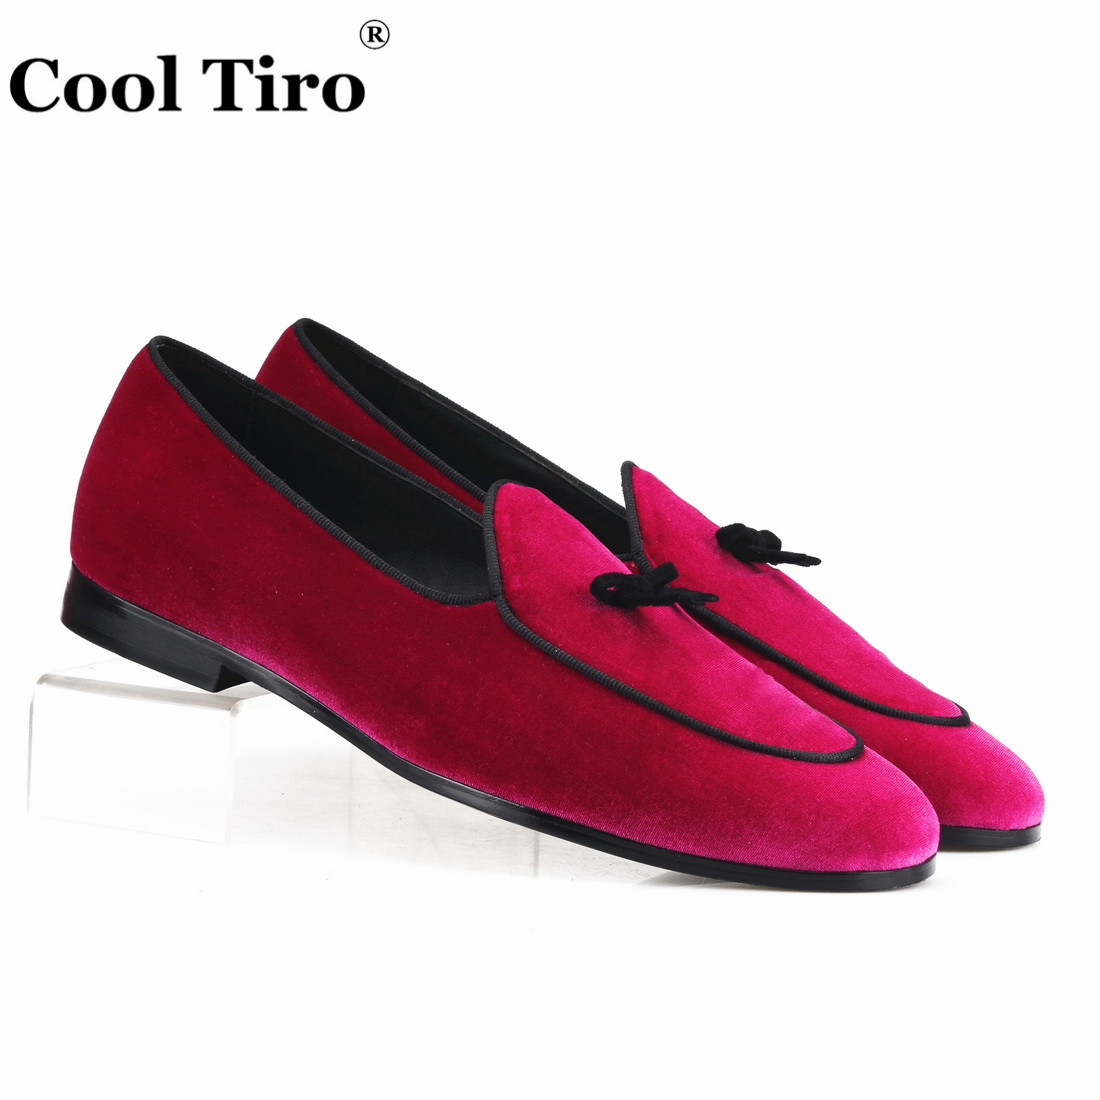 Cool Tiro Belgian Loafers Men s Smoking Slippers Moccasins Rose Velvet Shoes With Bow Wedding party